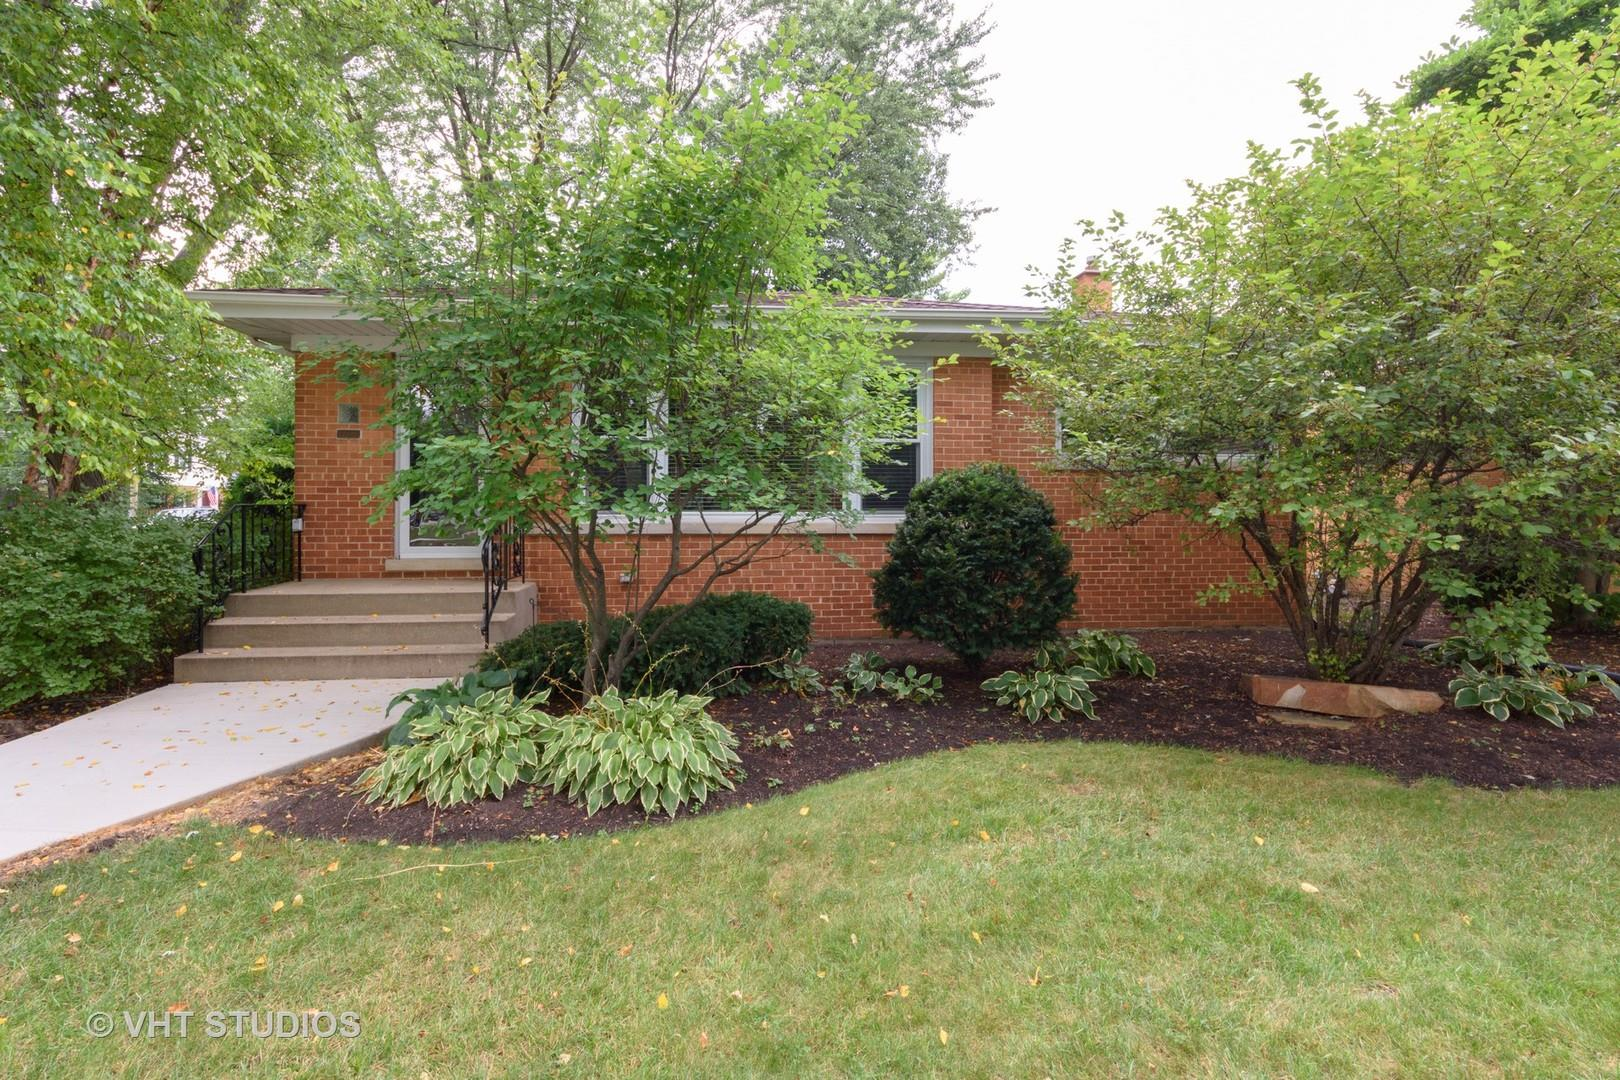 344 S PRINDLE Avenue, Arlington Heights, IL 60004 - #: 10861488